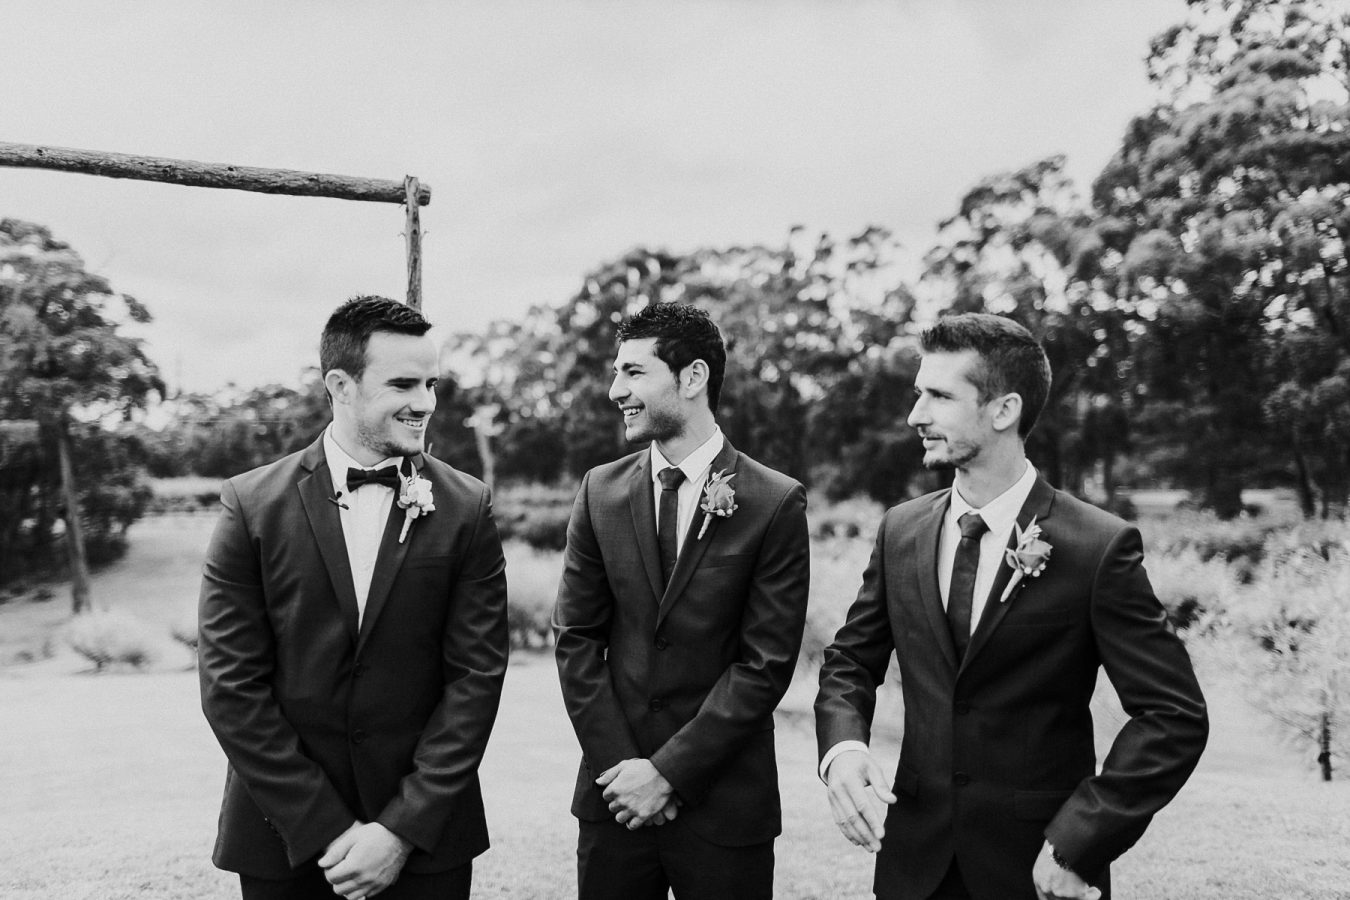 Courtney-Josh-Growwild-Bowral-southernhighlans-Wedding-41